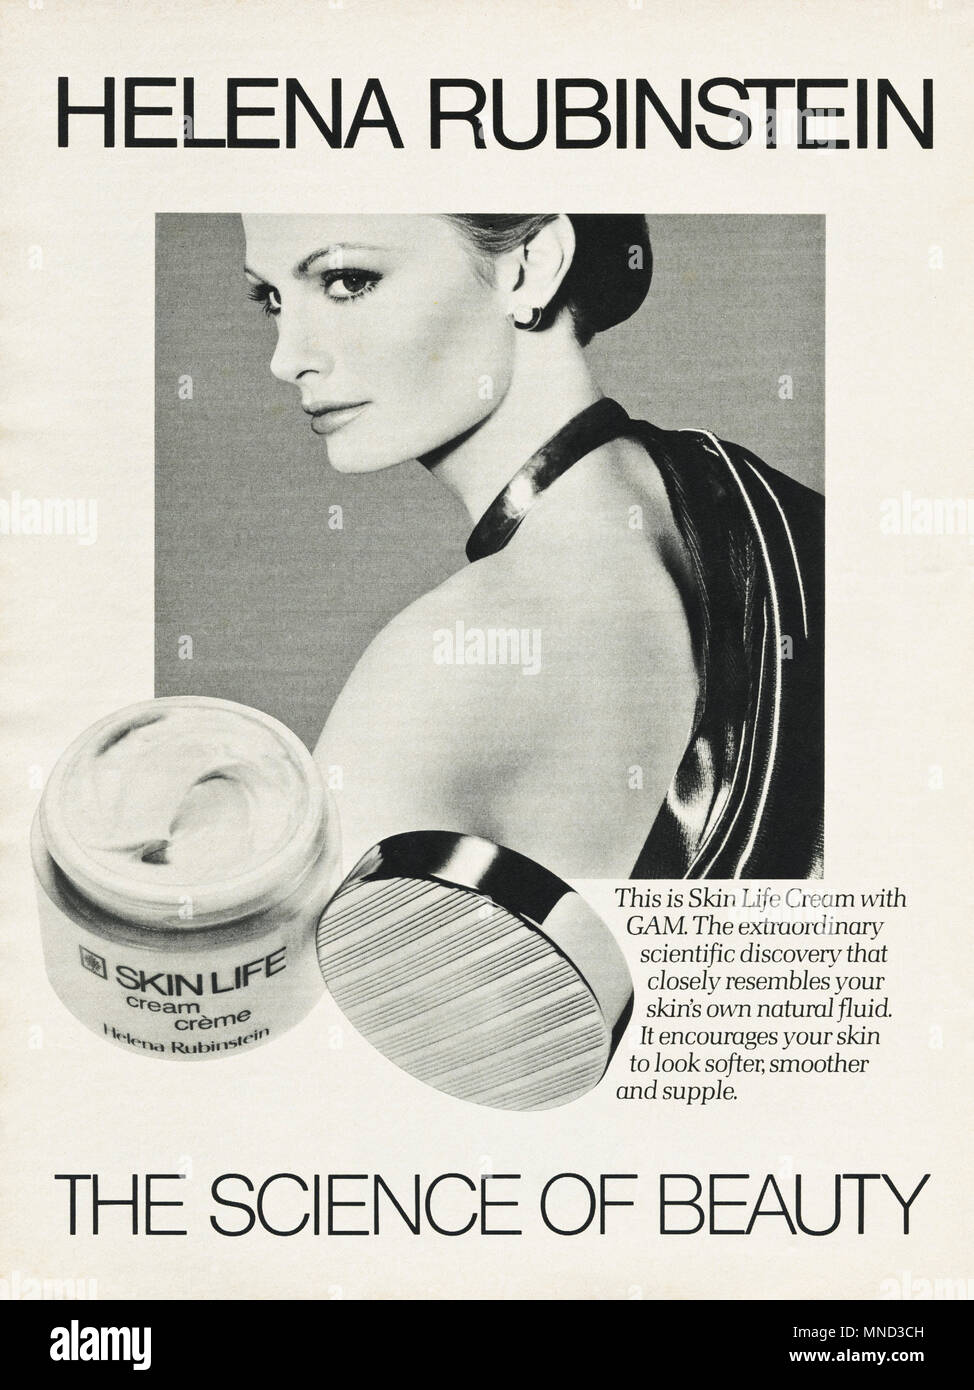 1980s original old vintage advertisement advertising Skin Life Cream with GAM by Helena Rubinstein for women advert in English magazine circa 1980 - Stock Image